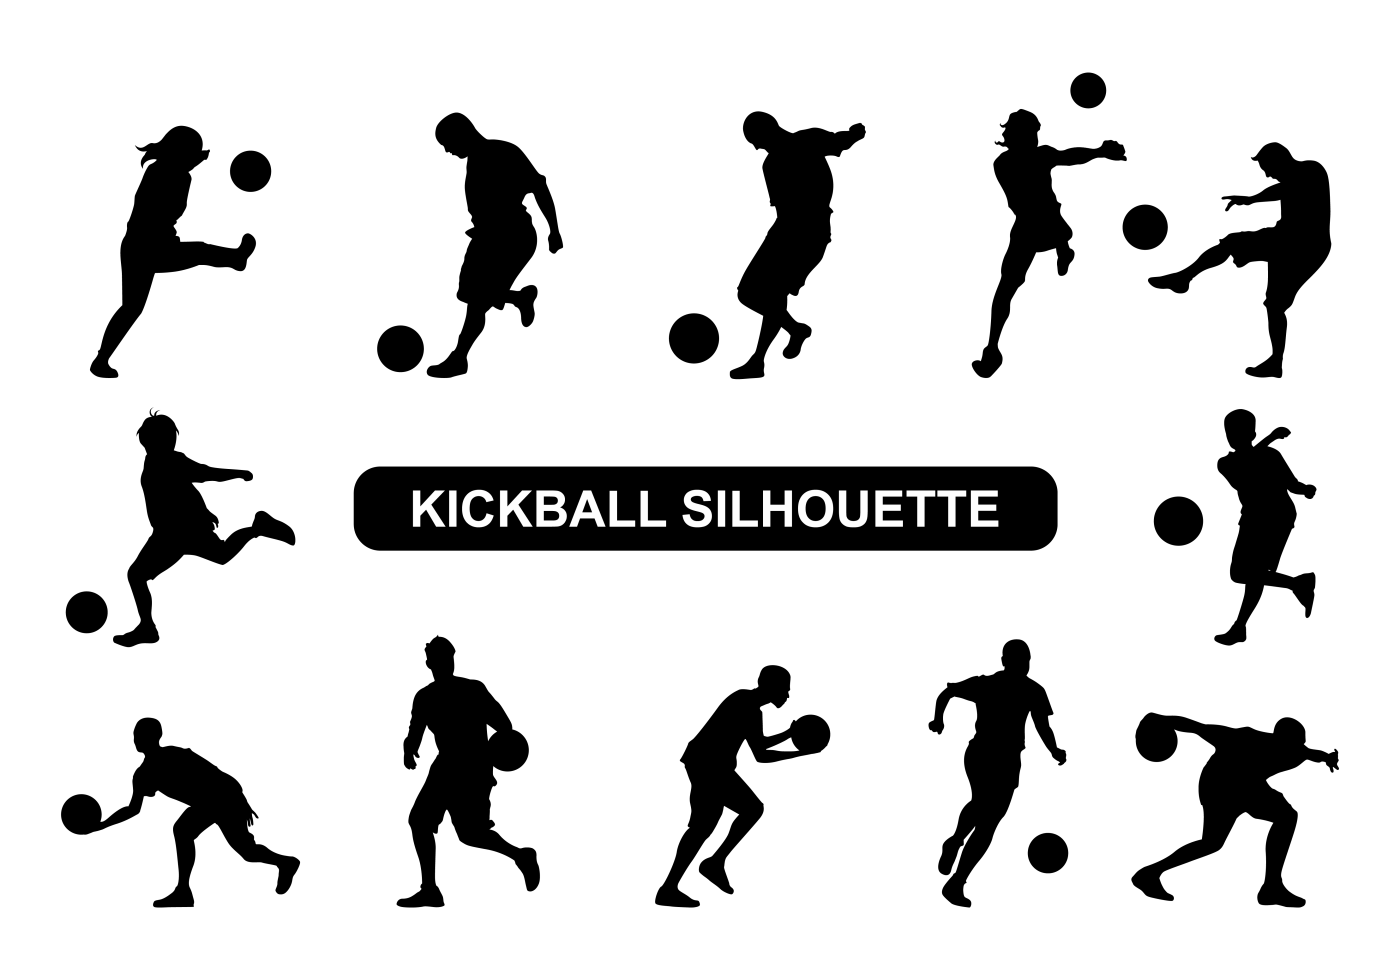 Kickball Team Silhouette Clipart